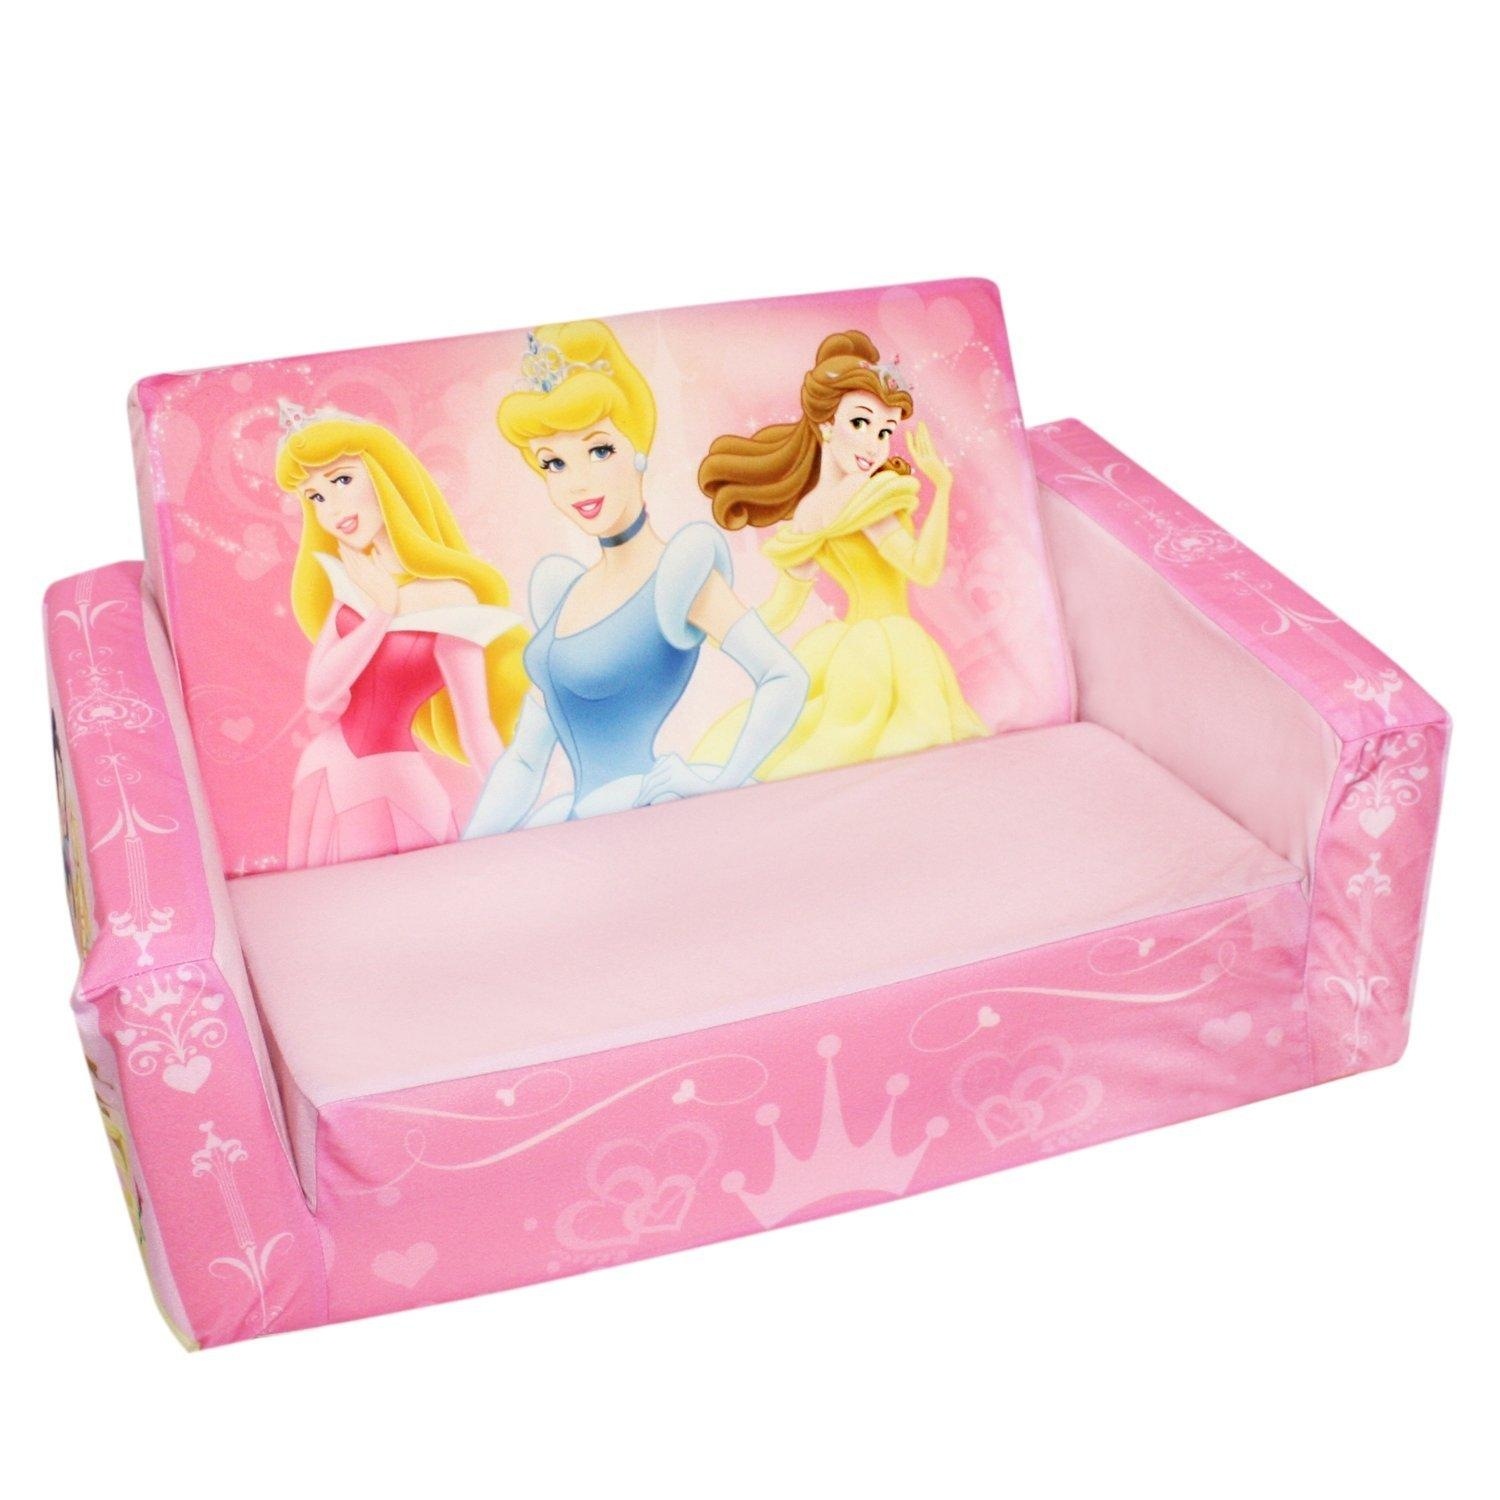 Disney Princess Fold Out Couch — Readingworks Furniture : Fold Out Regarding Disney Princess Couches (View 4 of 20)